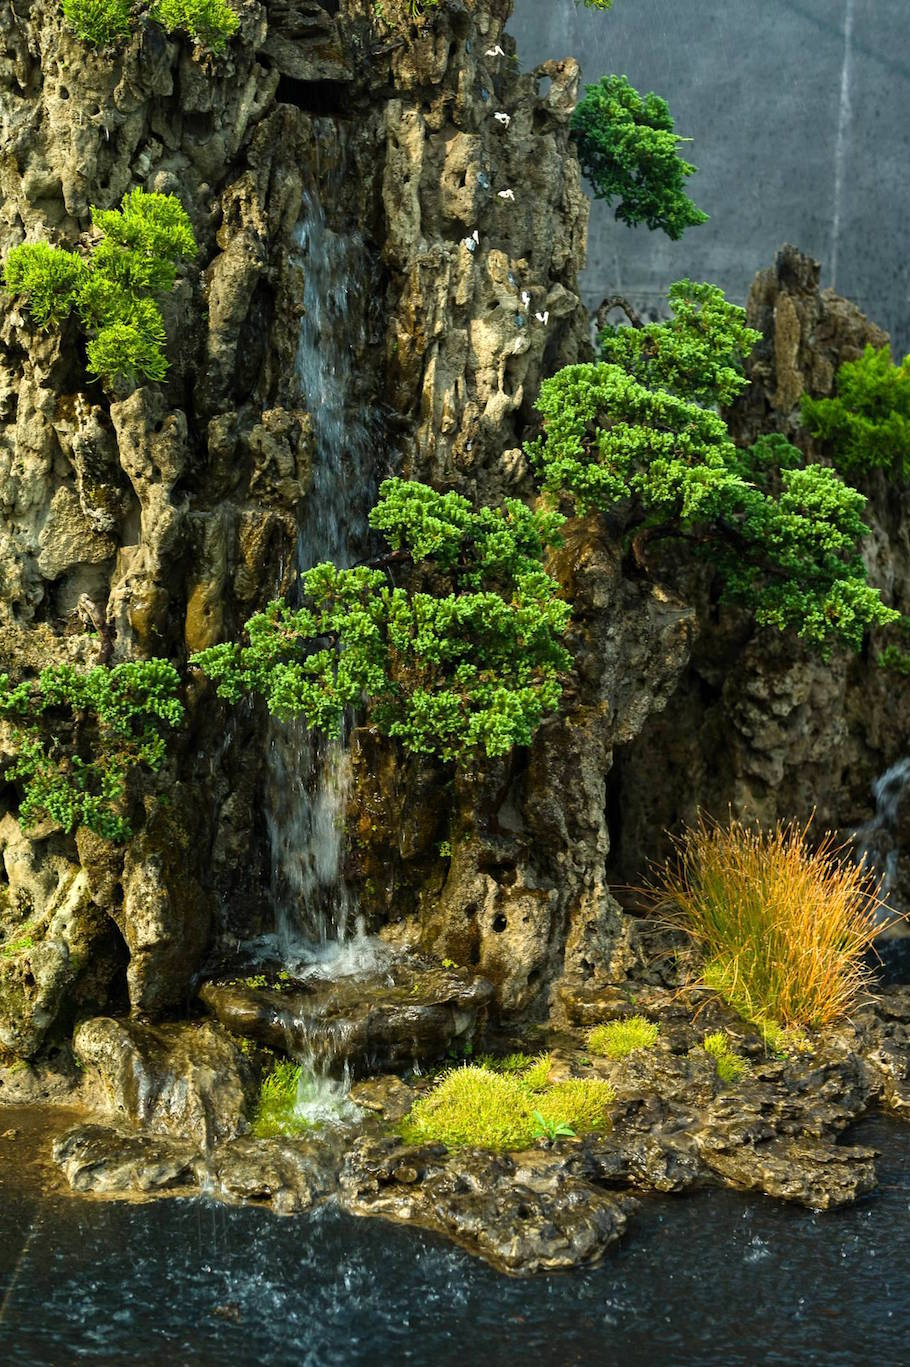 Bonsai landscape from India